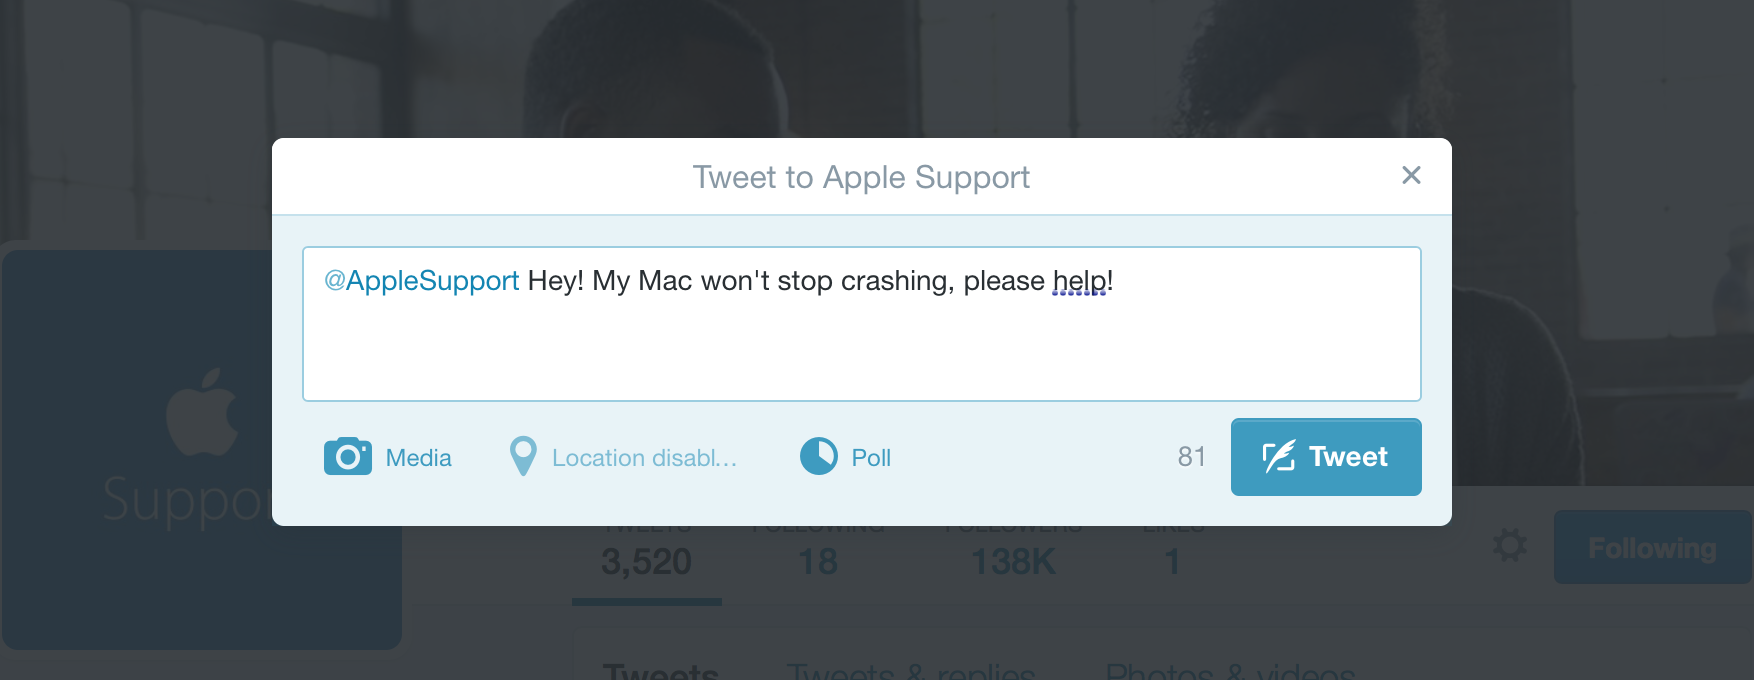 Apple Support Twitter users can reach out for help